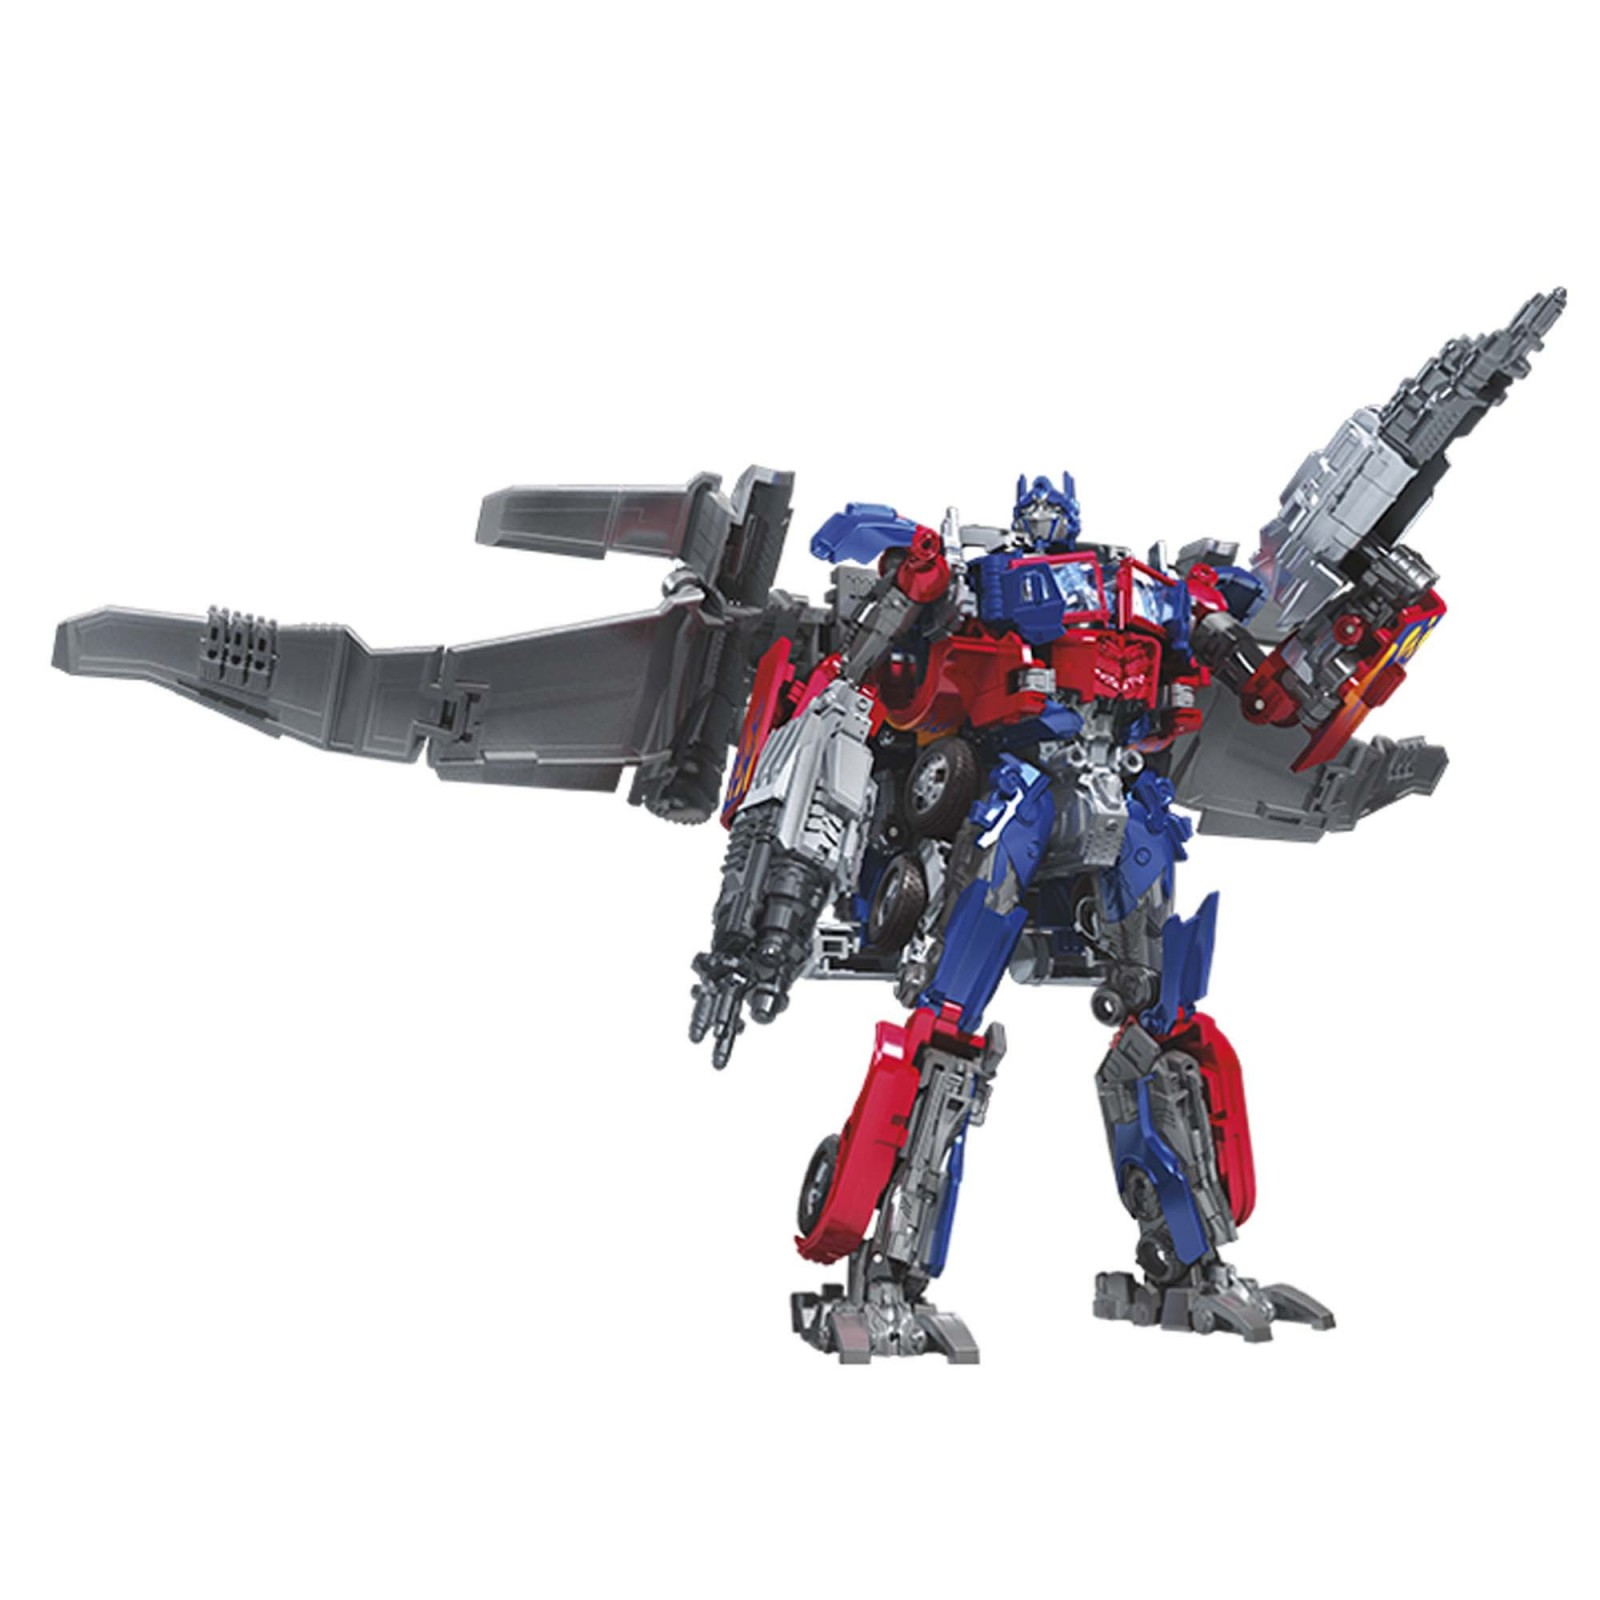 Transformers News: Studio Series DOTM Jetwing Prime, AOE Helicopter Drift, Hightower, KSI Boss revealed